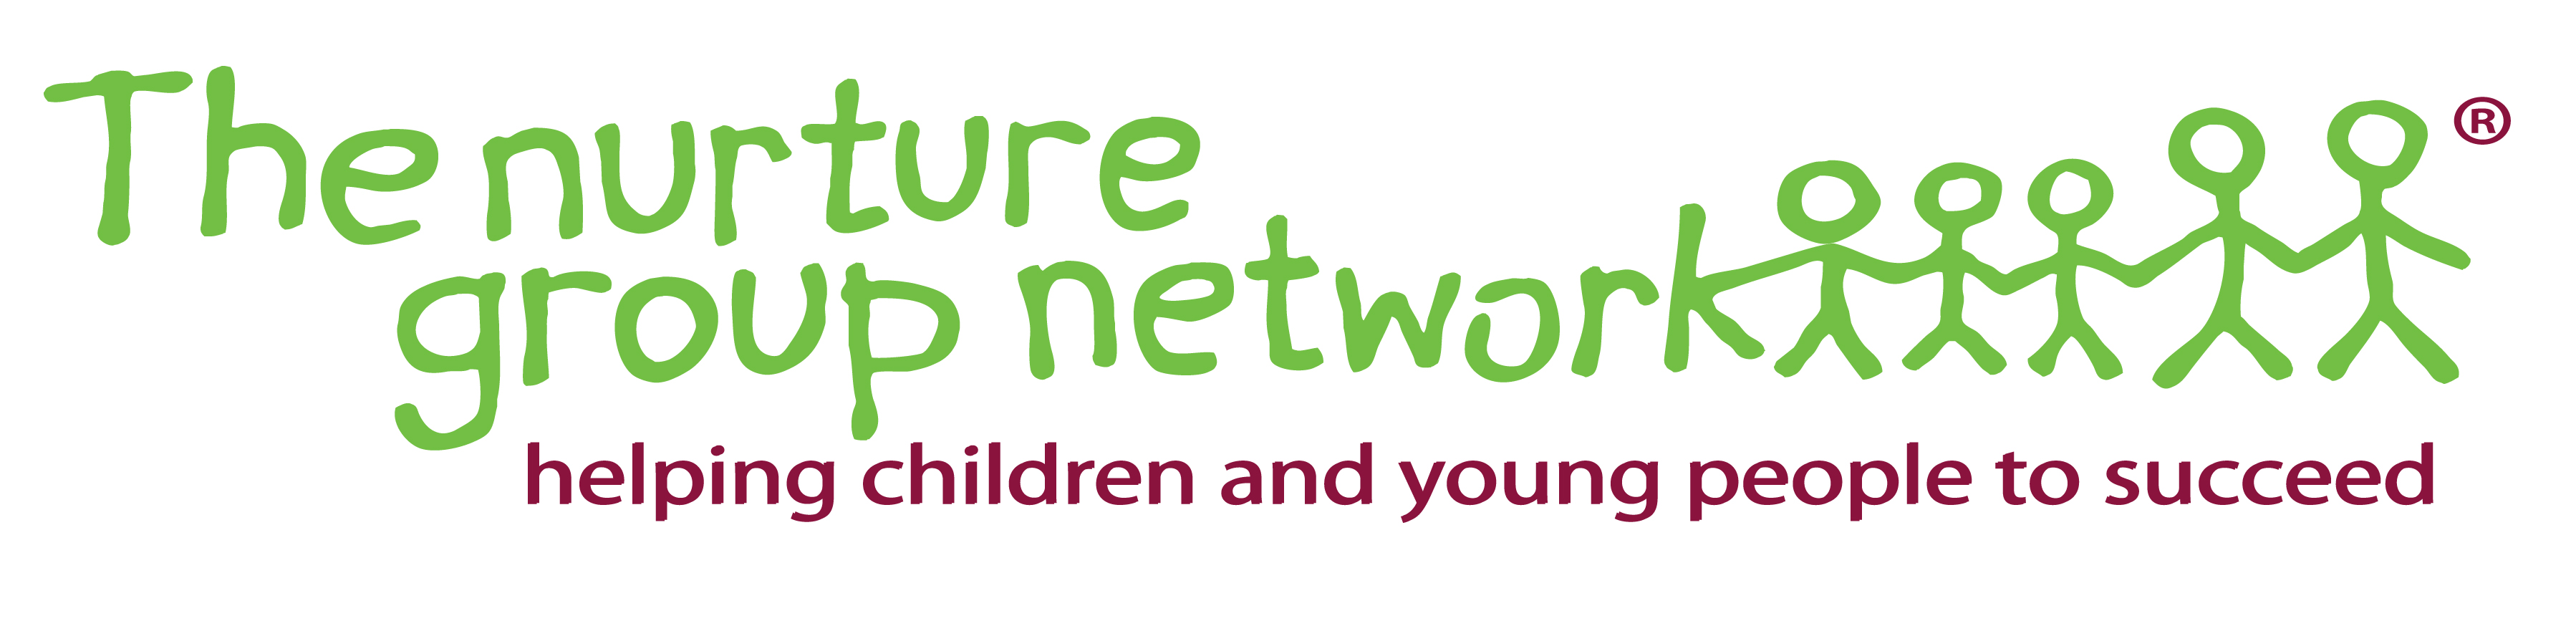 The Nurture Group Network